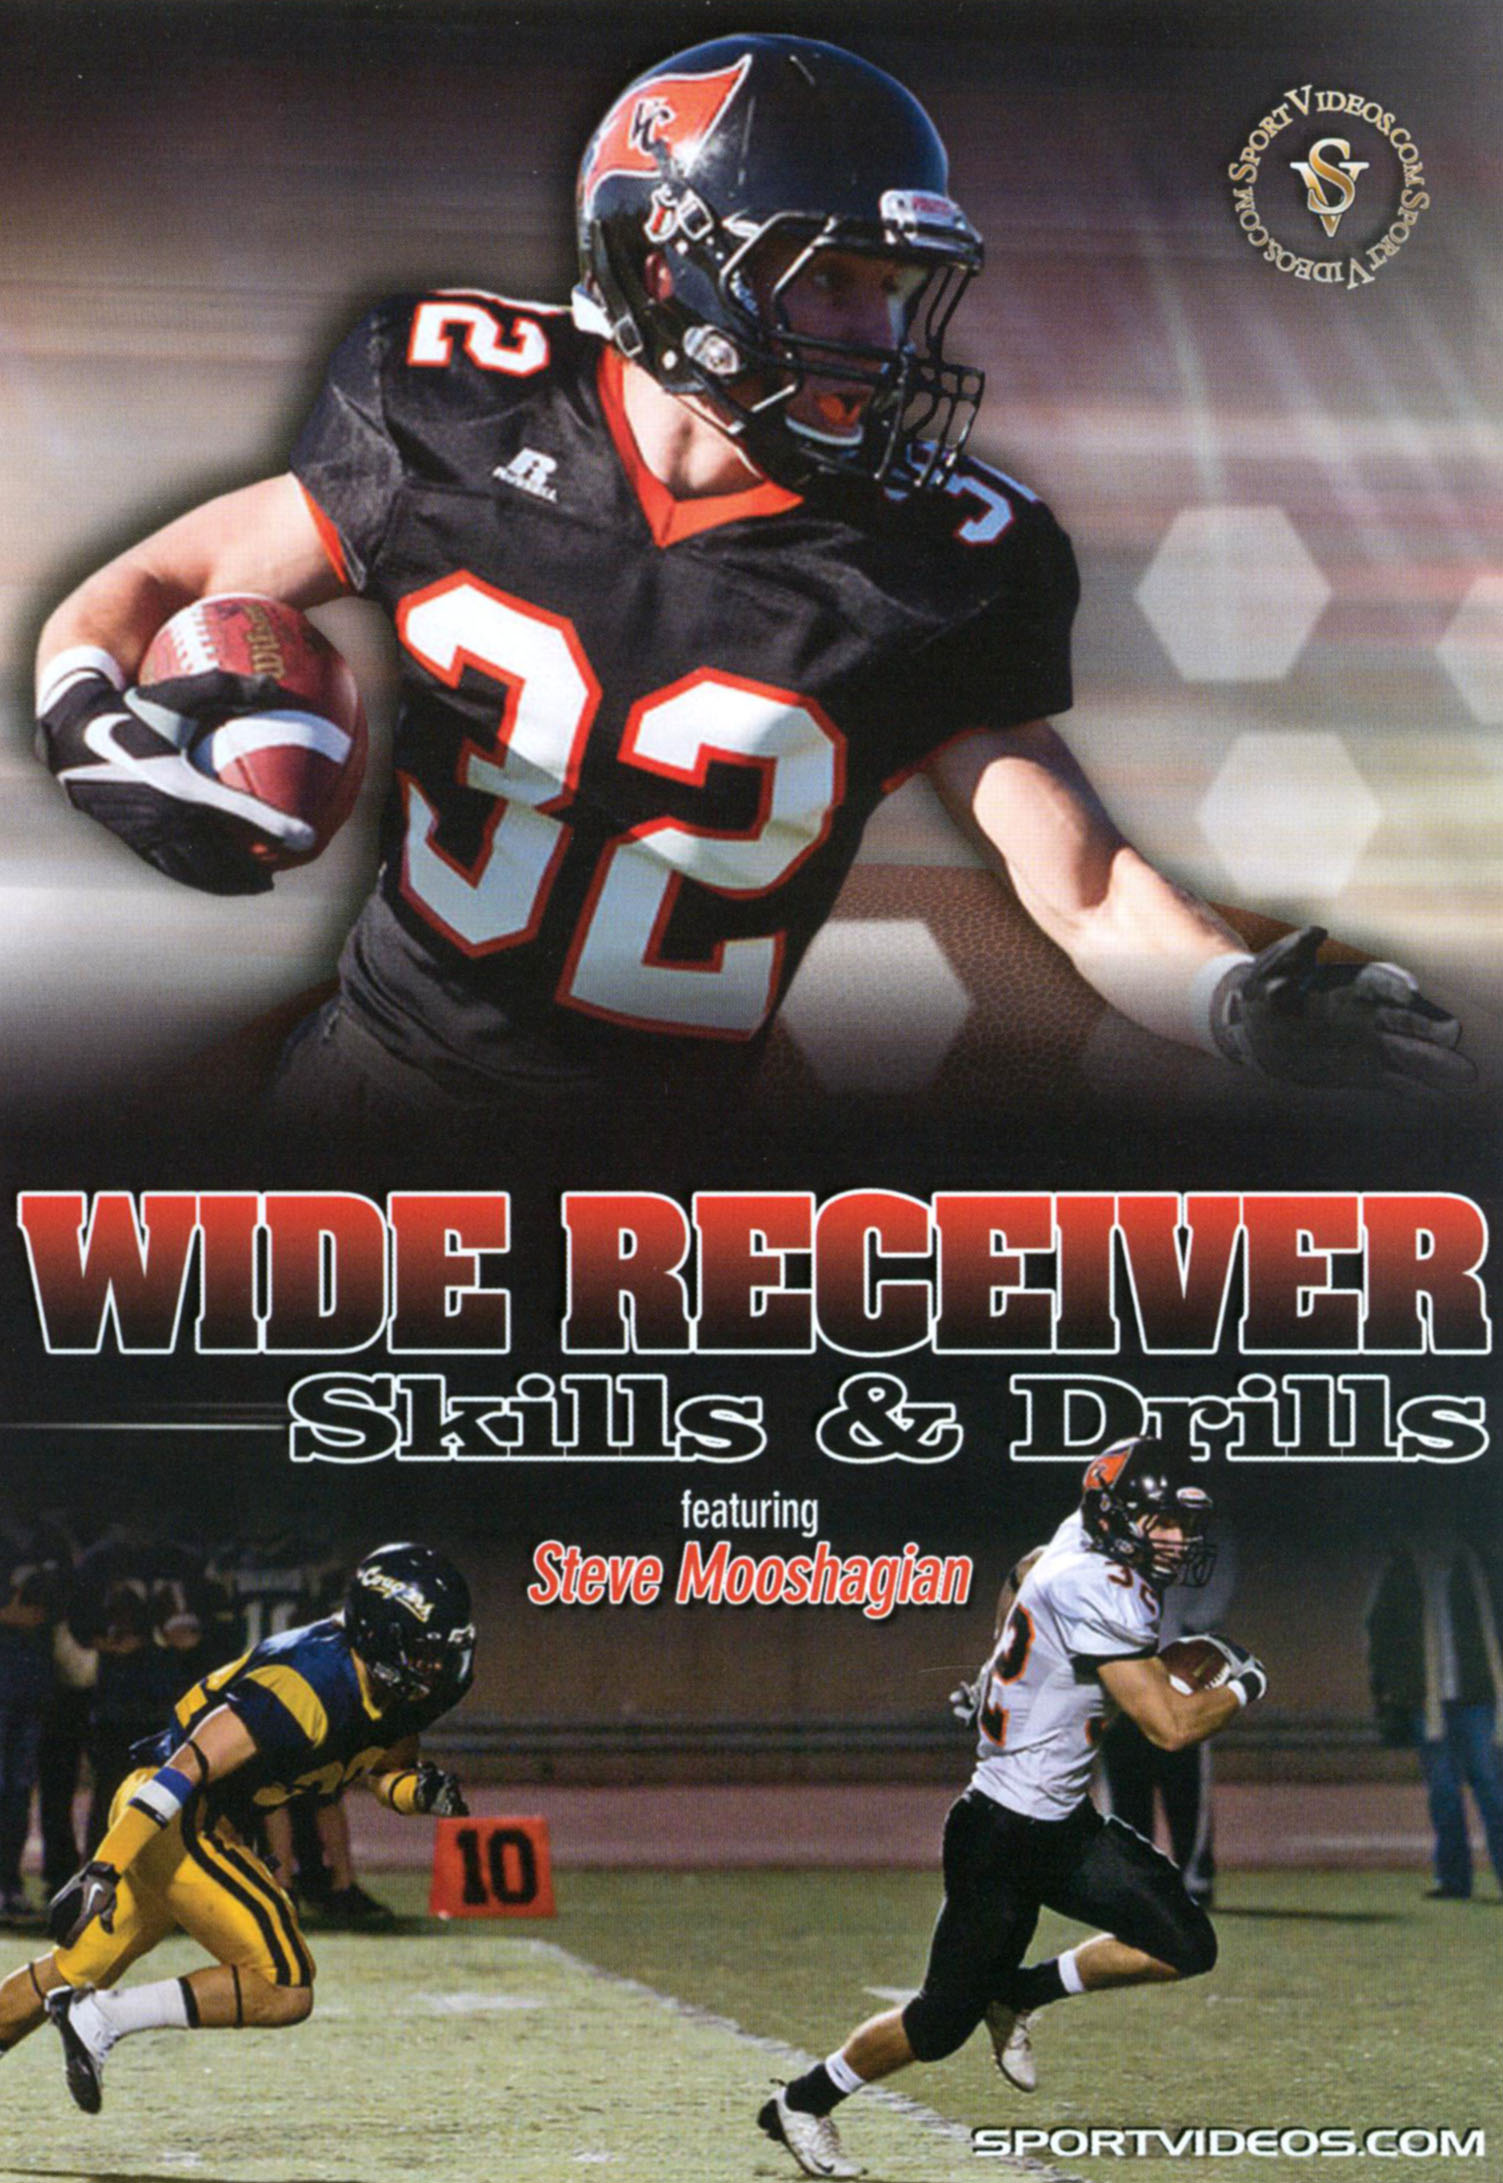 Wide Receiver Skills & Drills